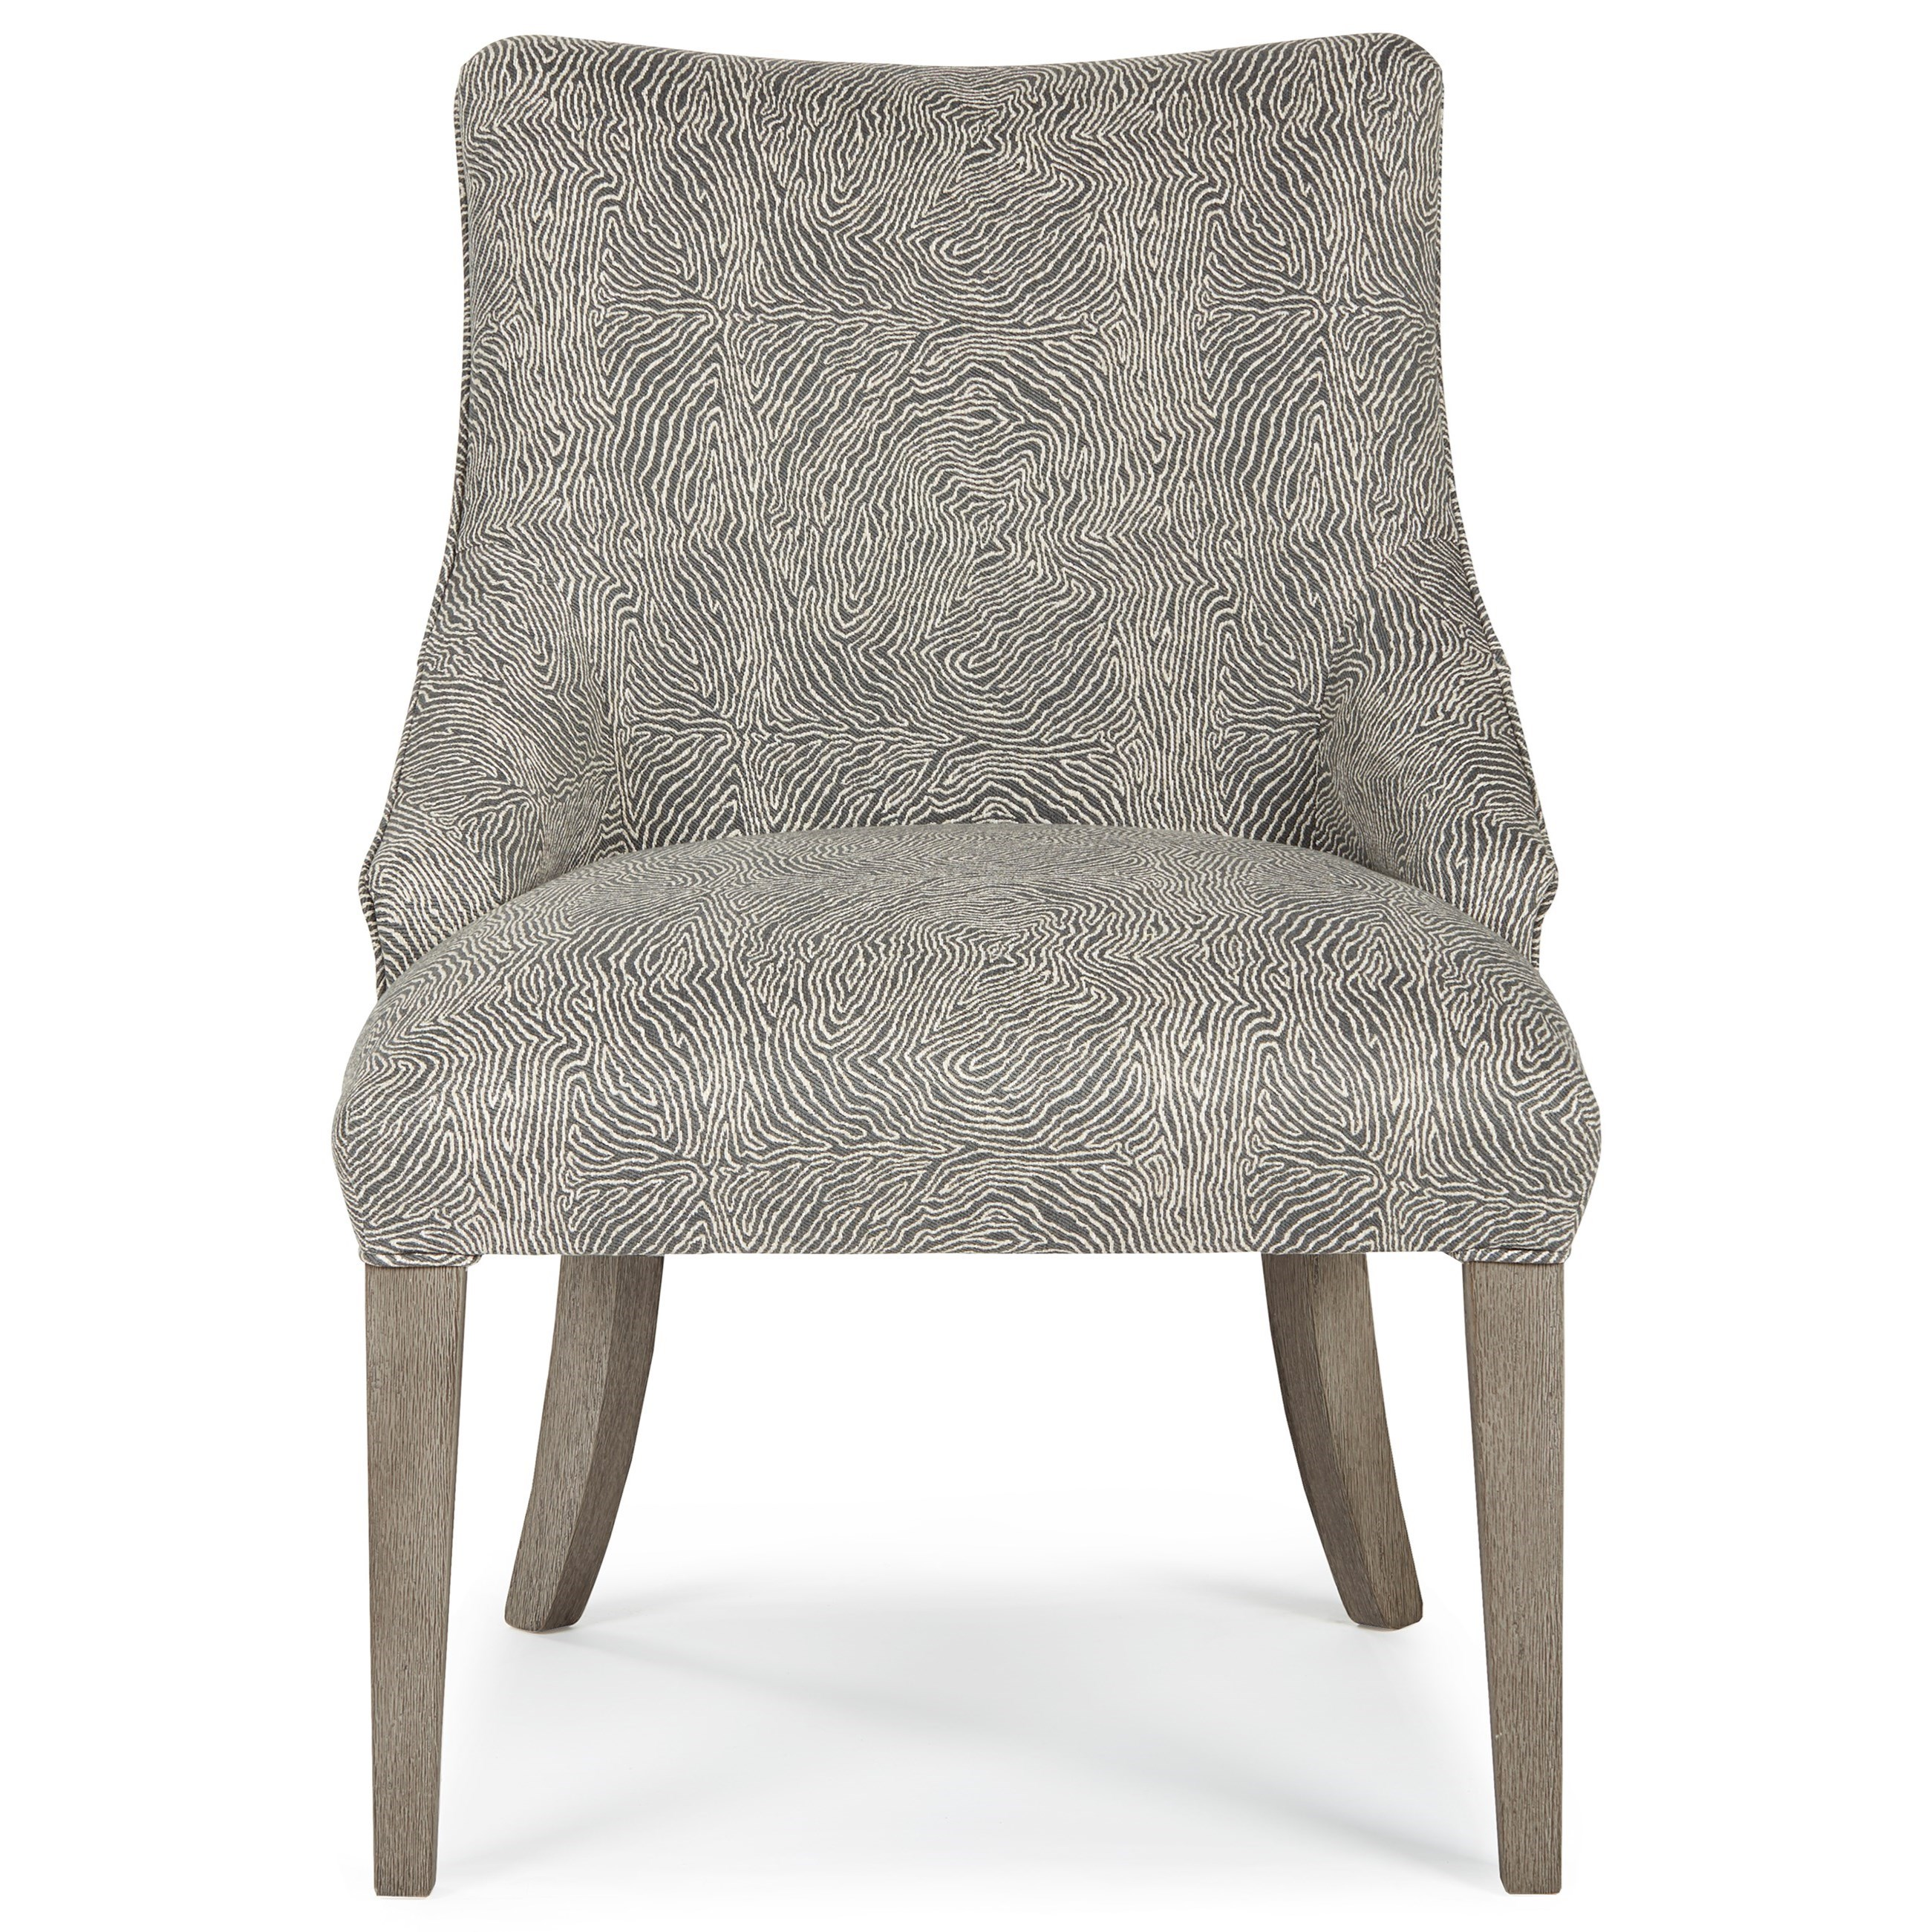 Elie Side Chair by Bravo Furniture at Bennett's Furniture and Mattresses